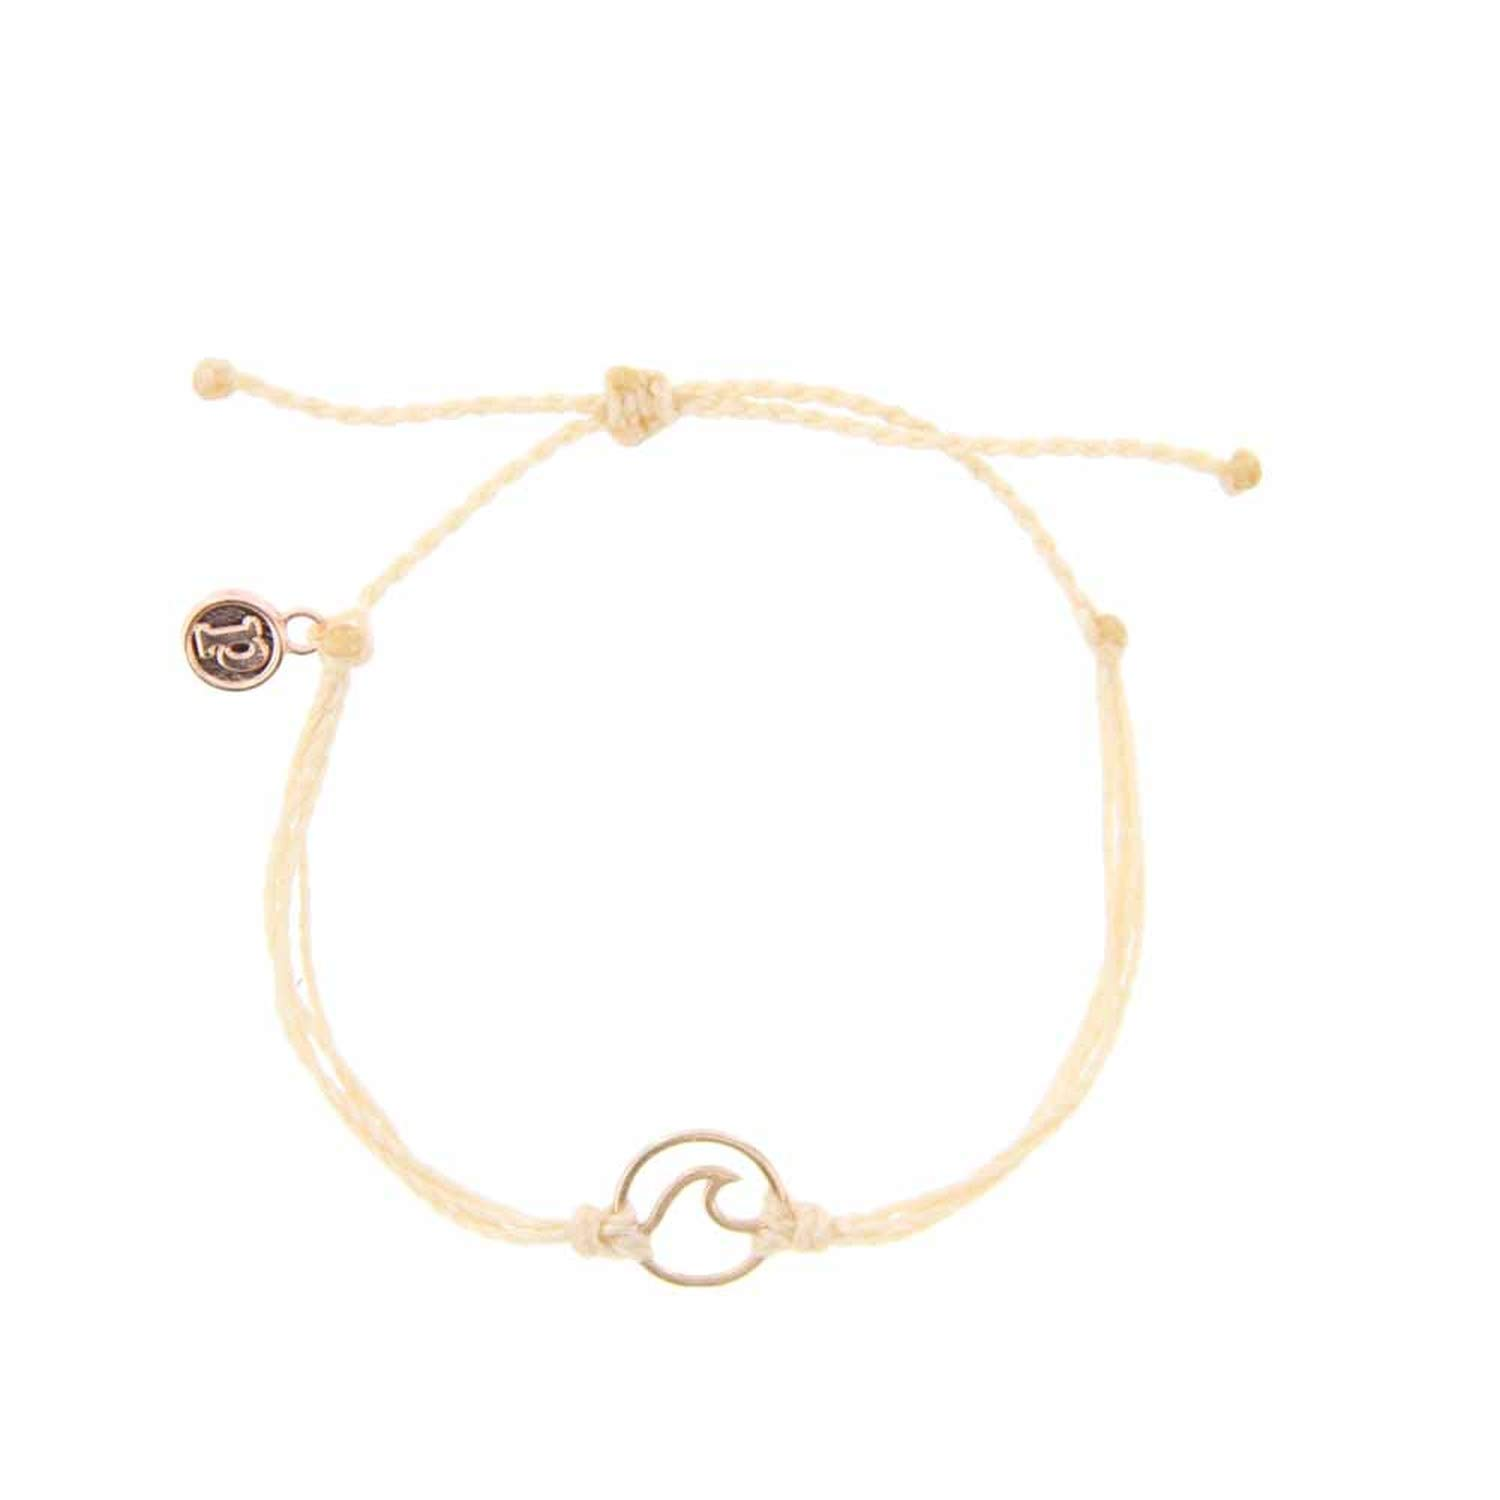 Pura Vida Rose Gold Wave OG Cream Bracelet - Plated Charm, Adjustable Band - 100% Waterproof